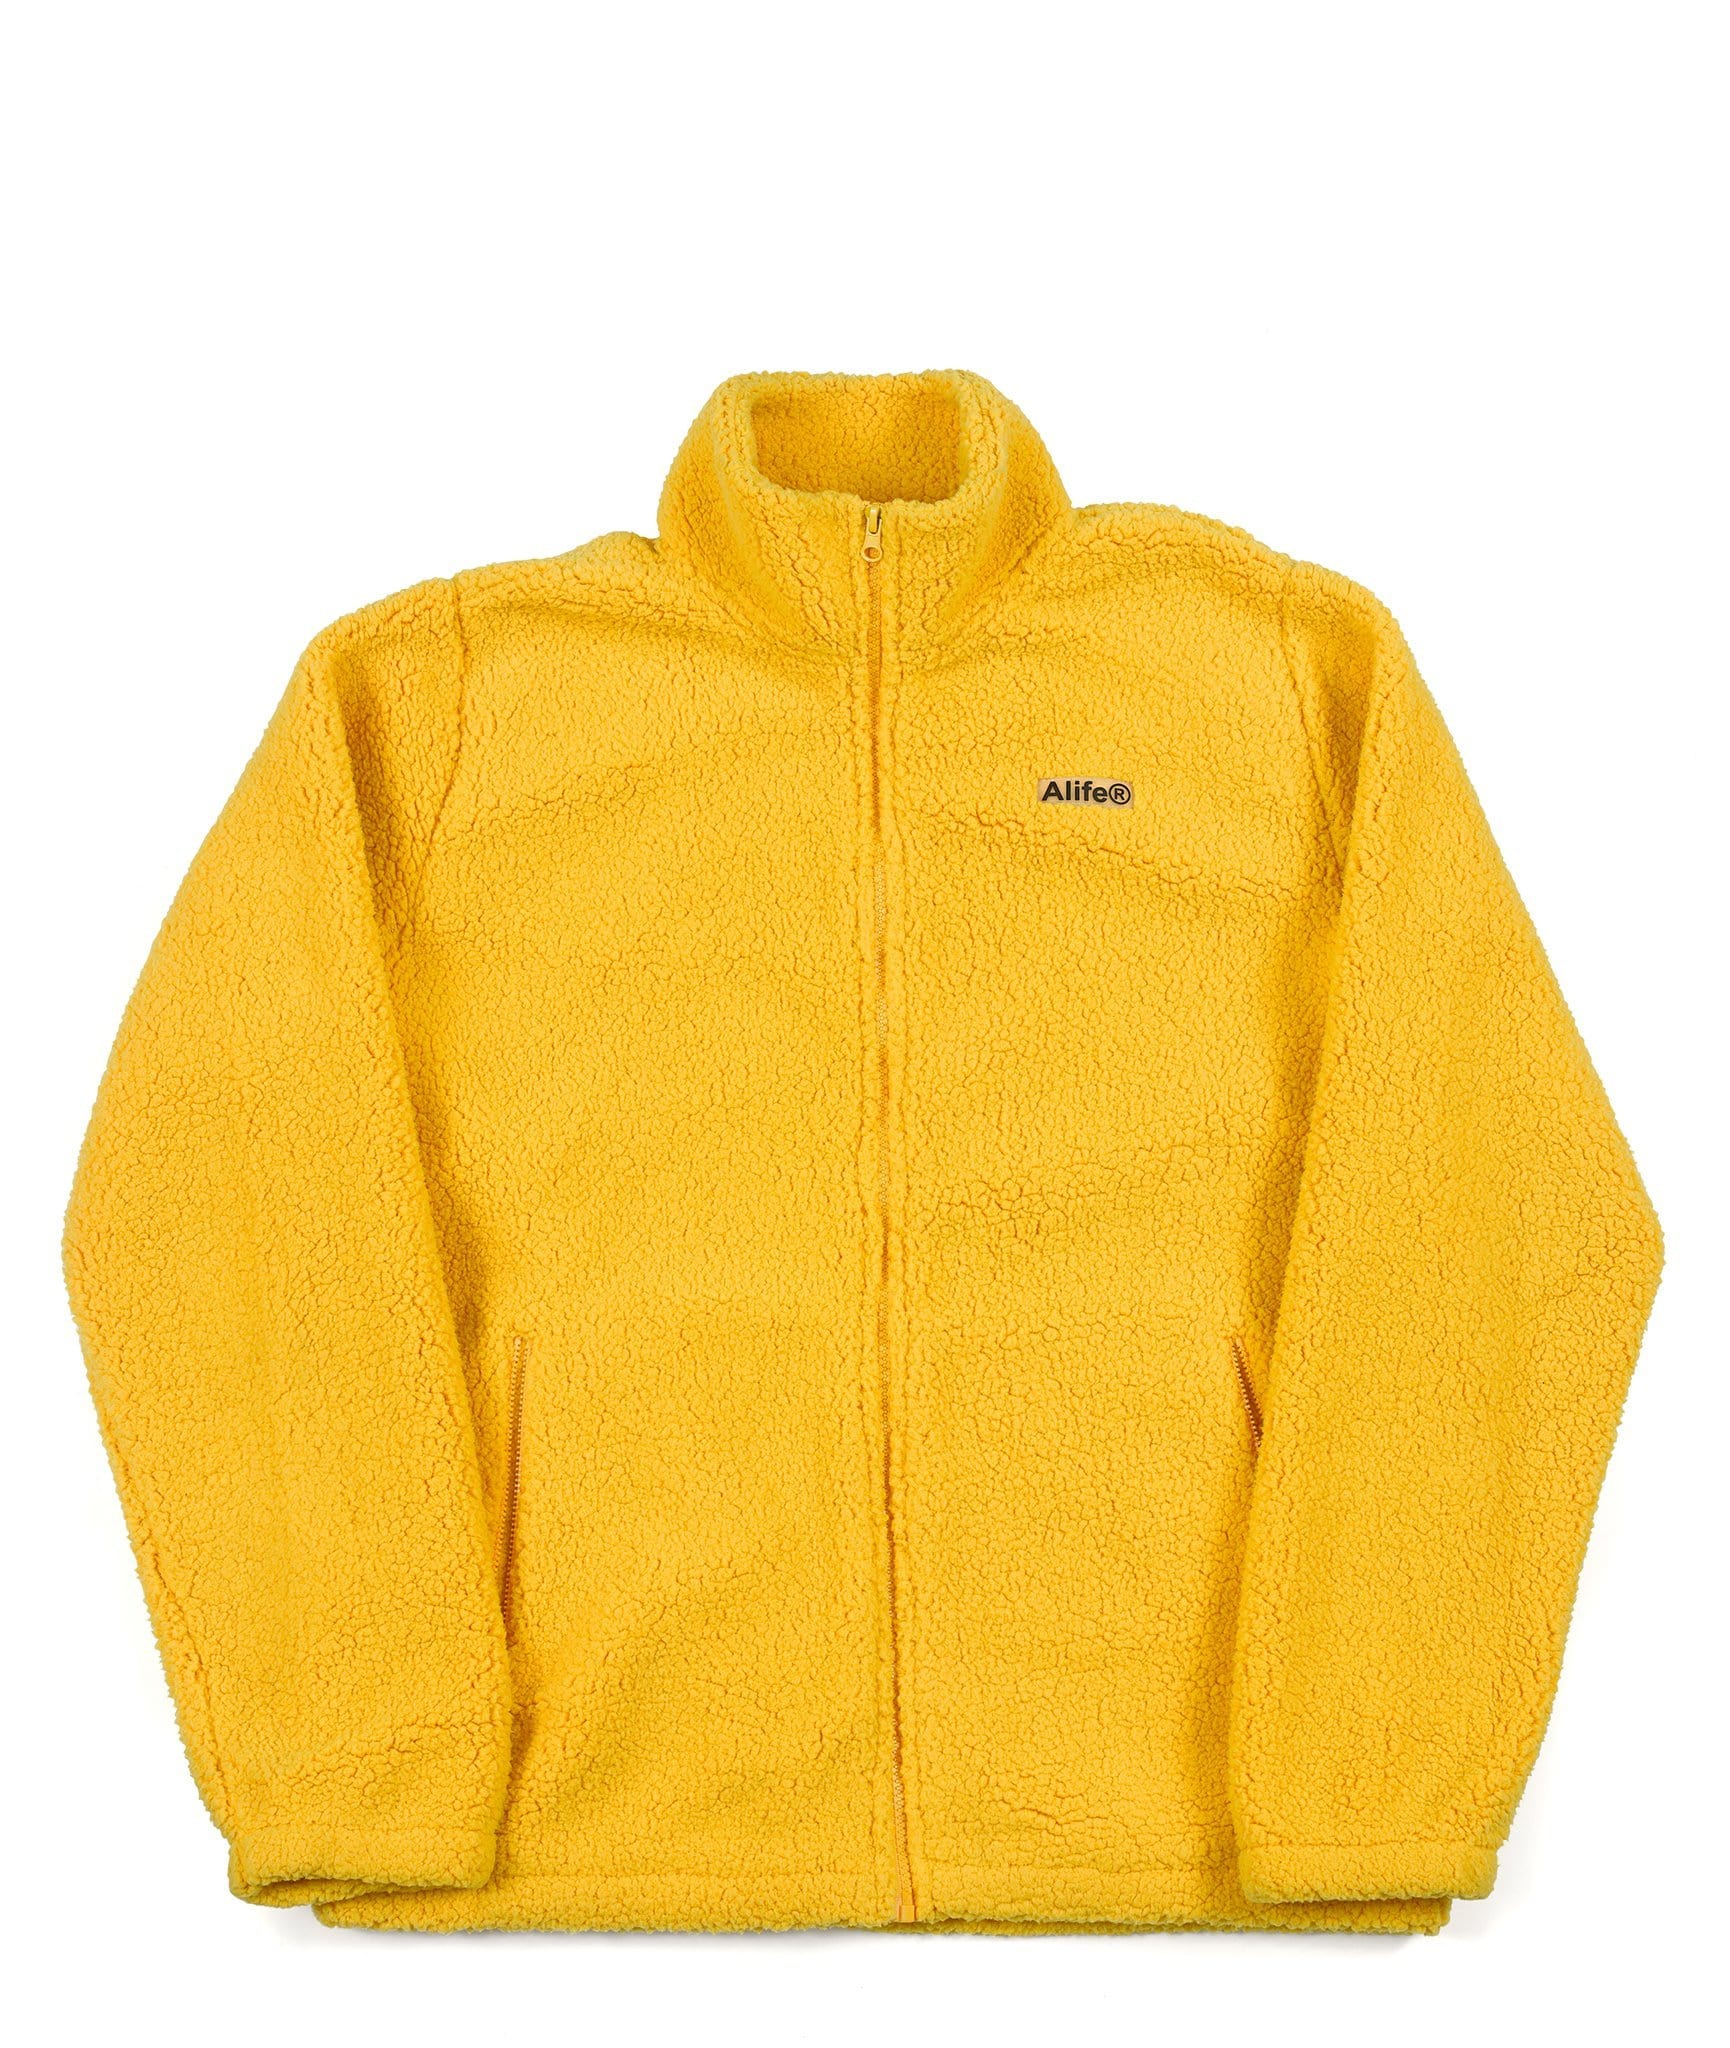 Alife Sherpa Fleece Jacket